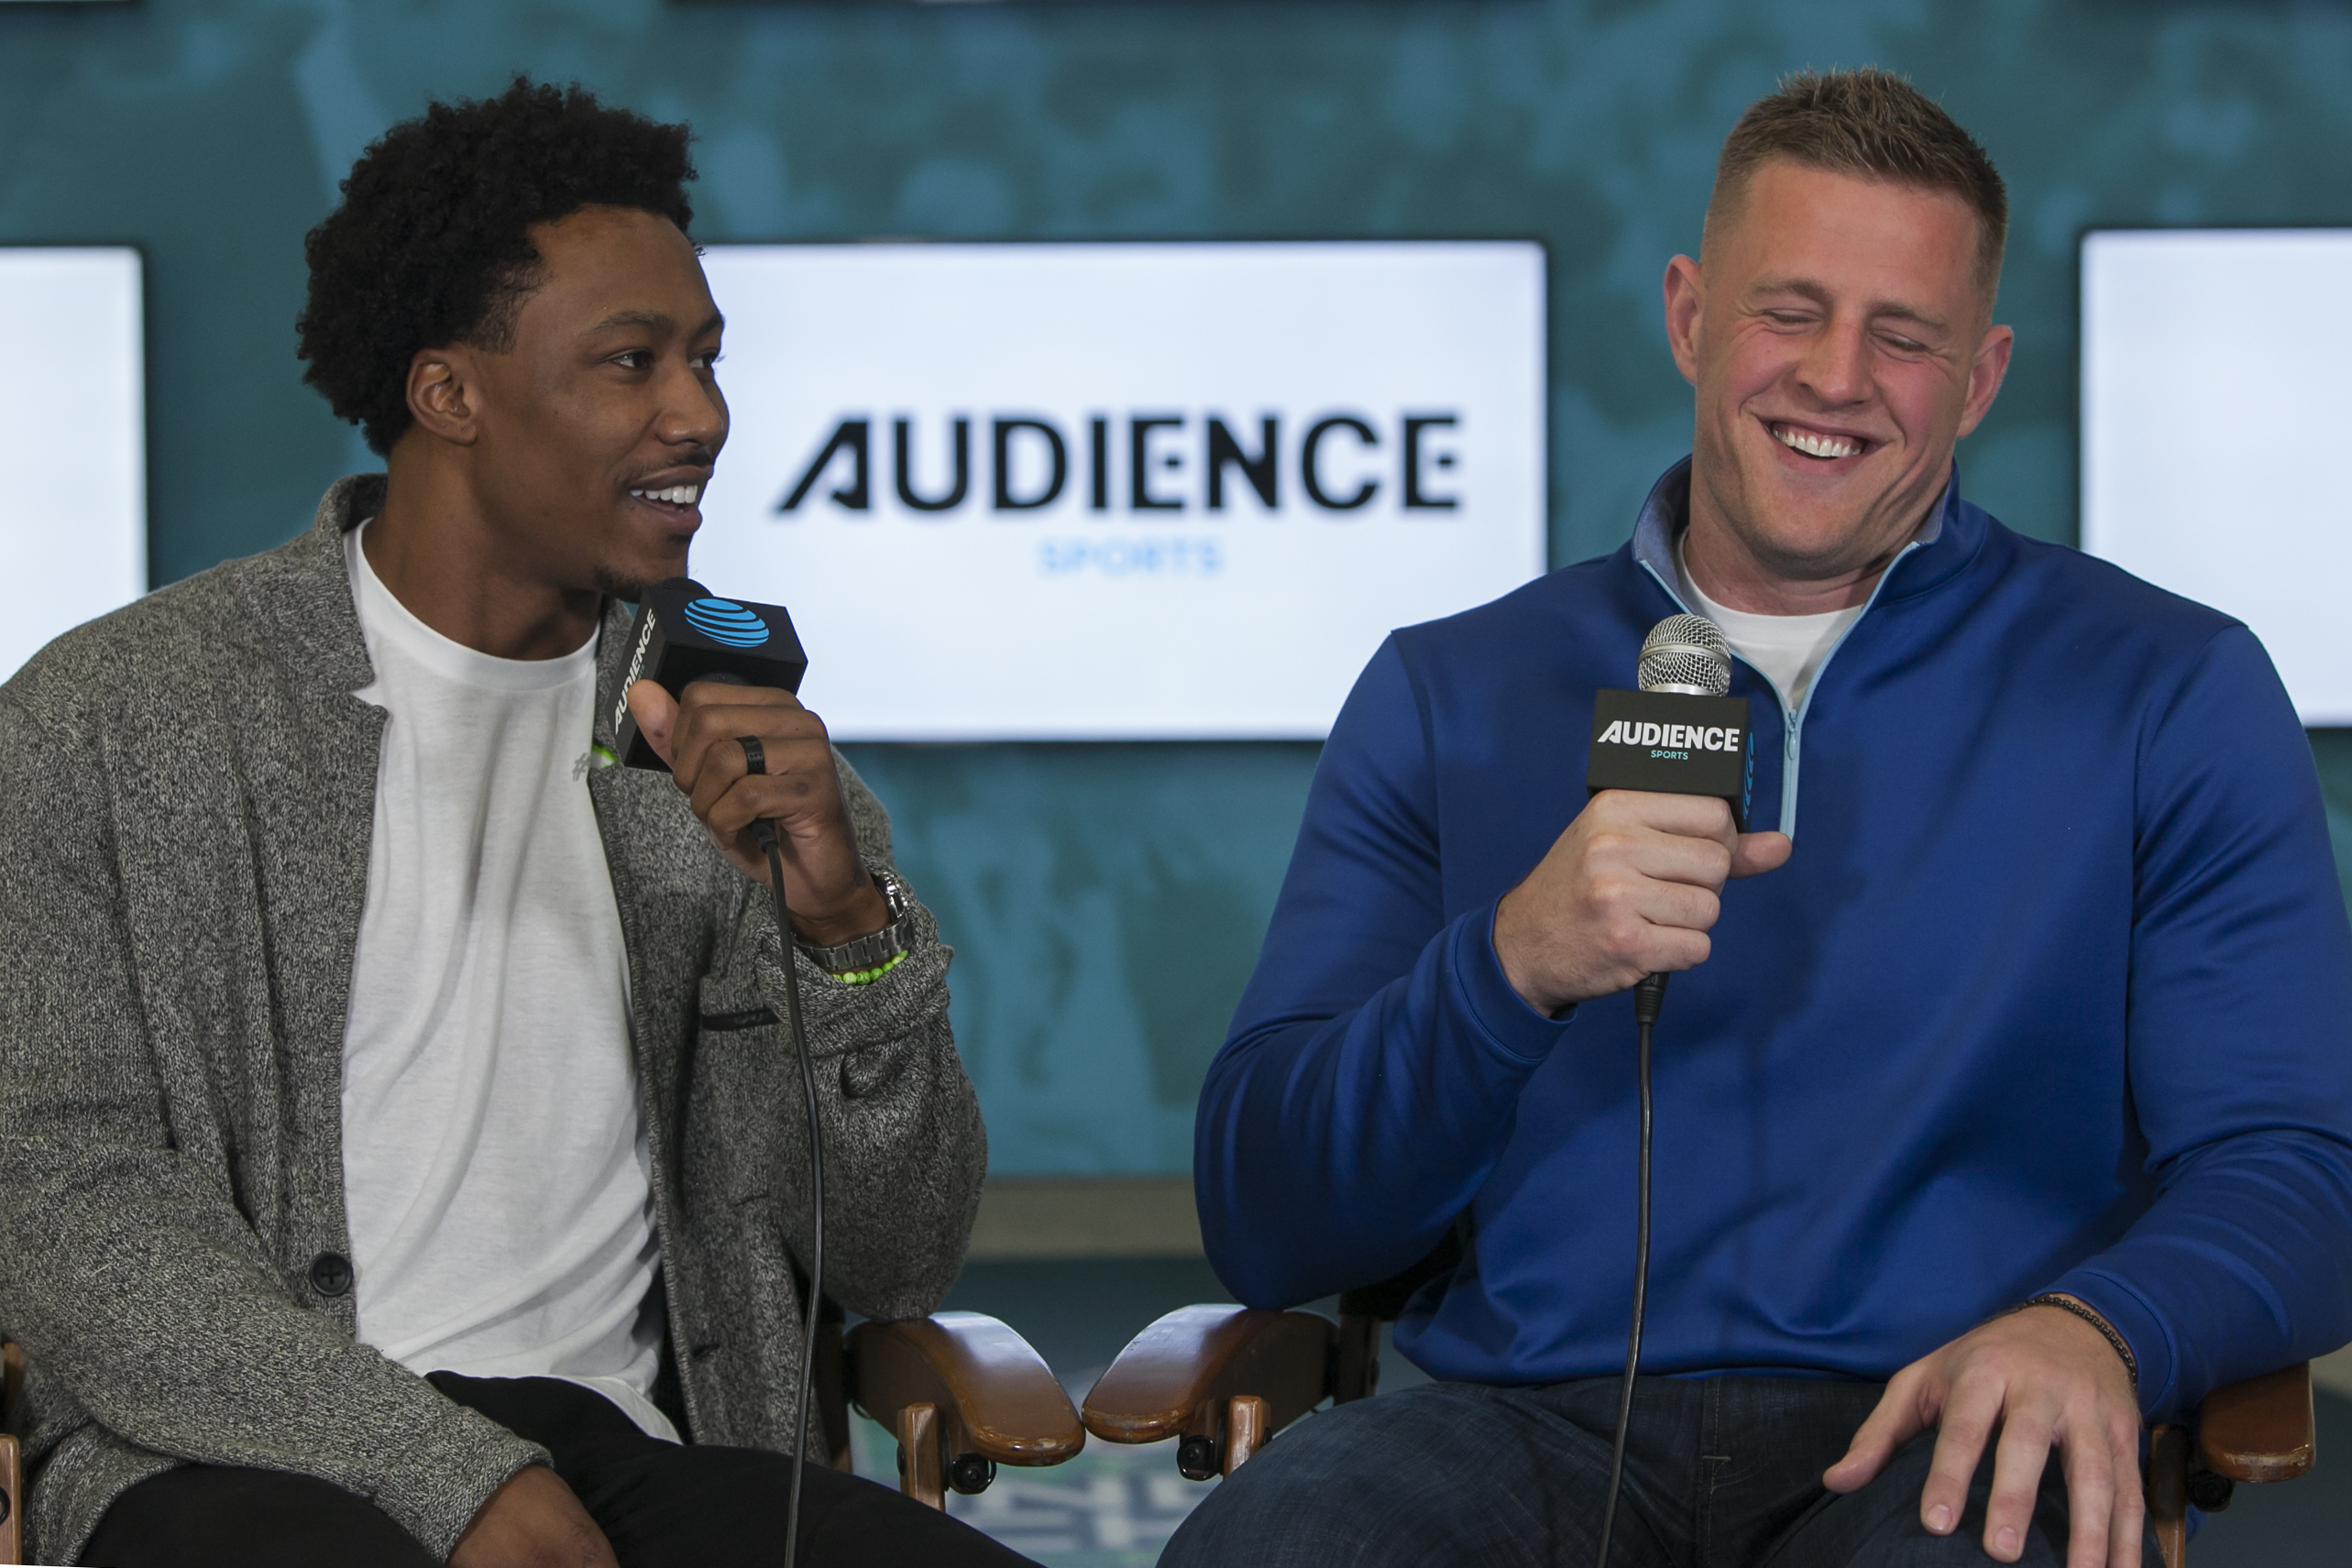 Brandon Marshall talks shop with the Texans' J.J. Watt.